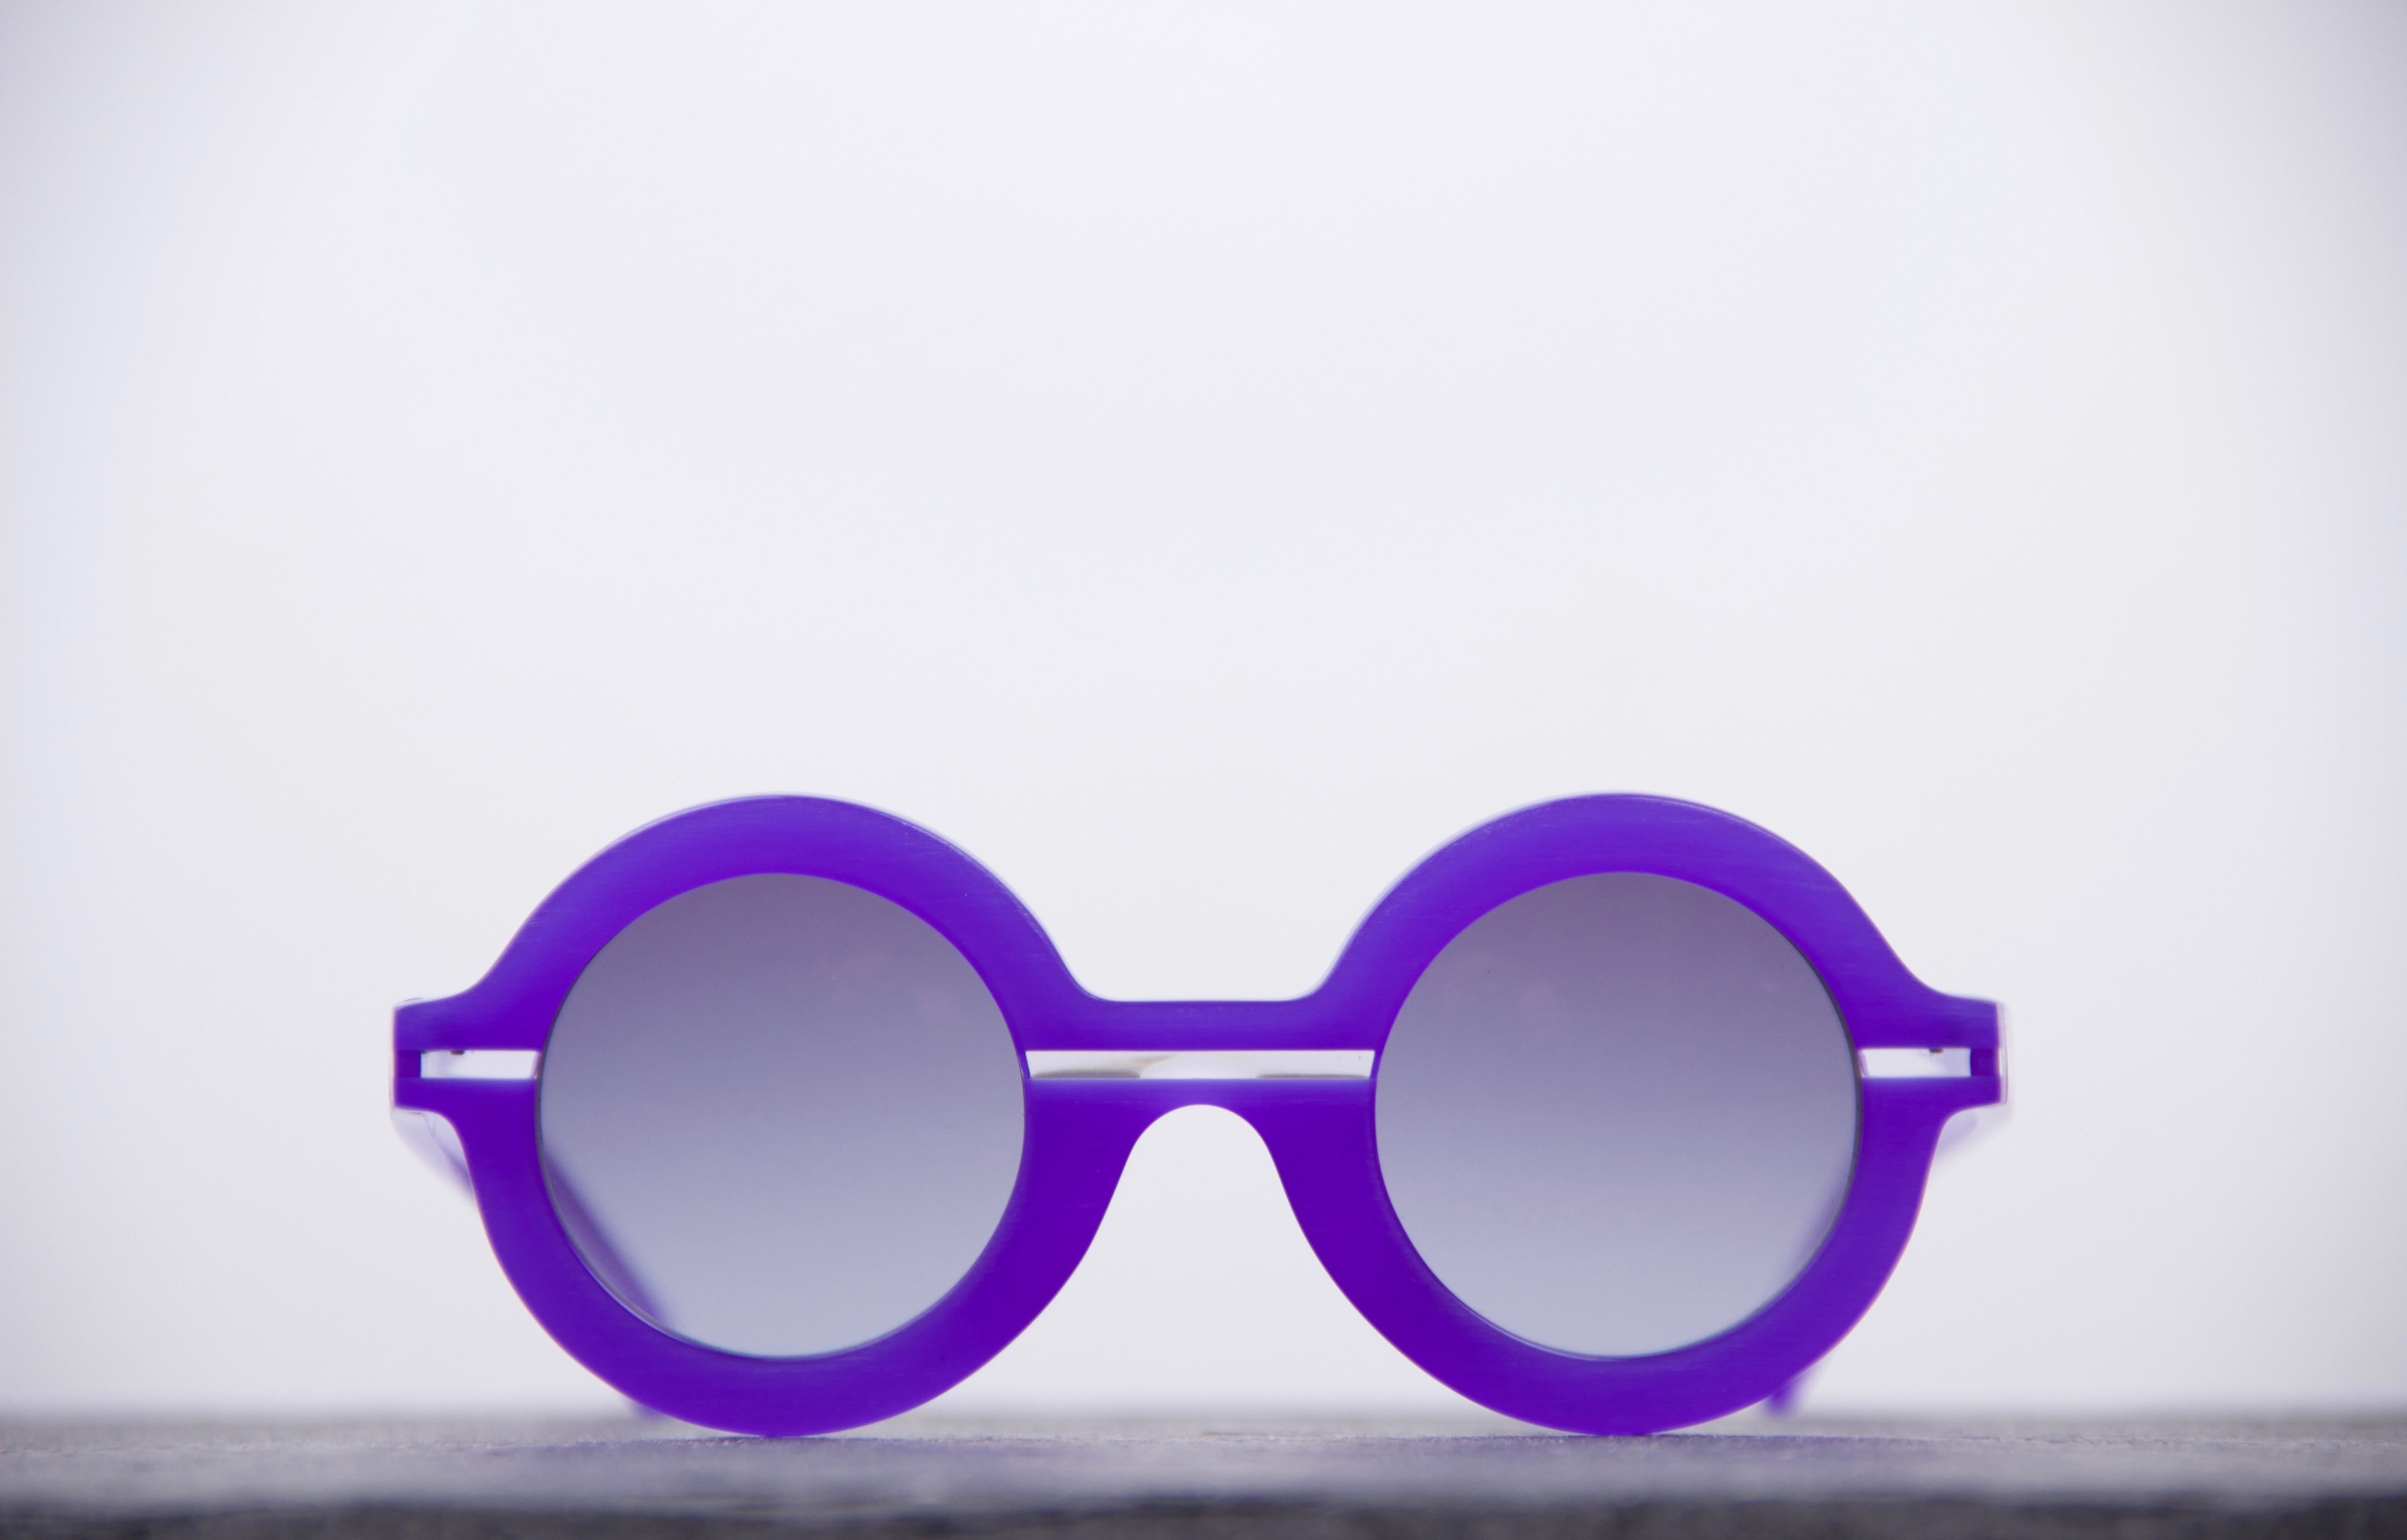 Revel Paris Maison Rabih Kayrouz S1 purple-1